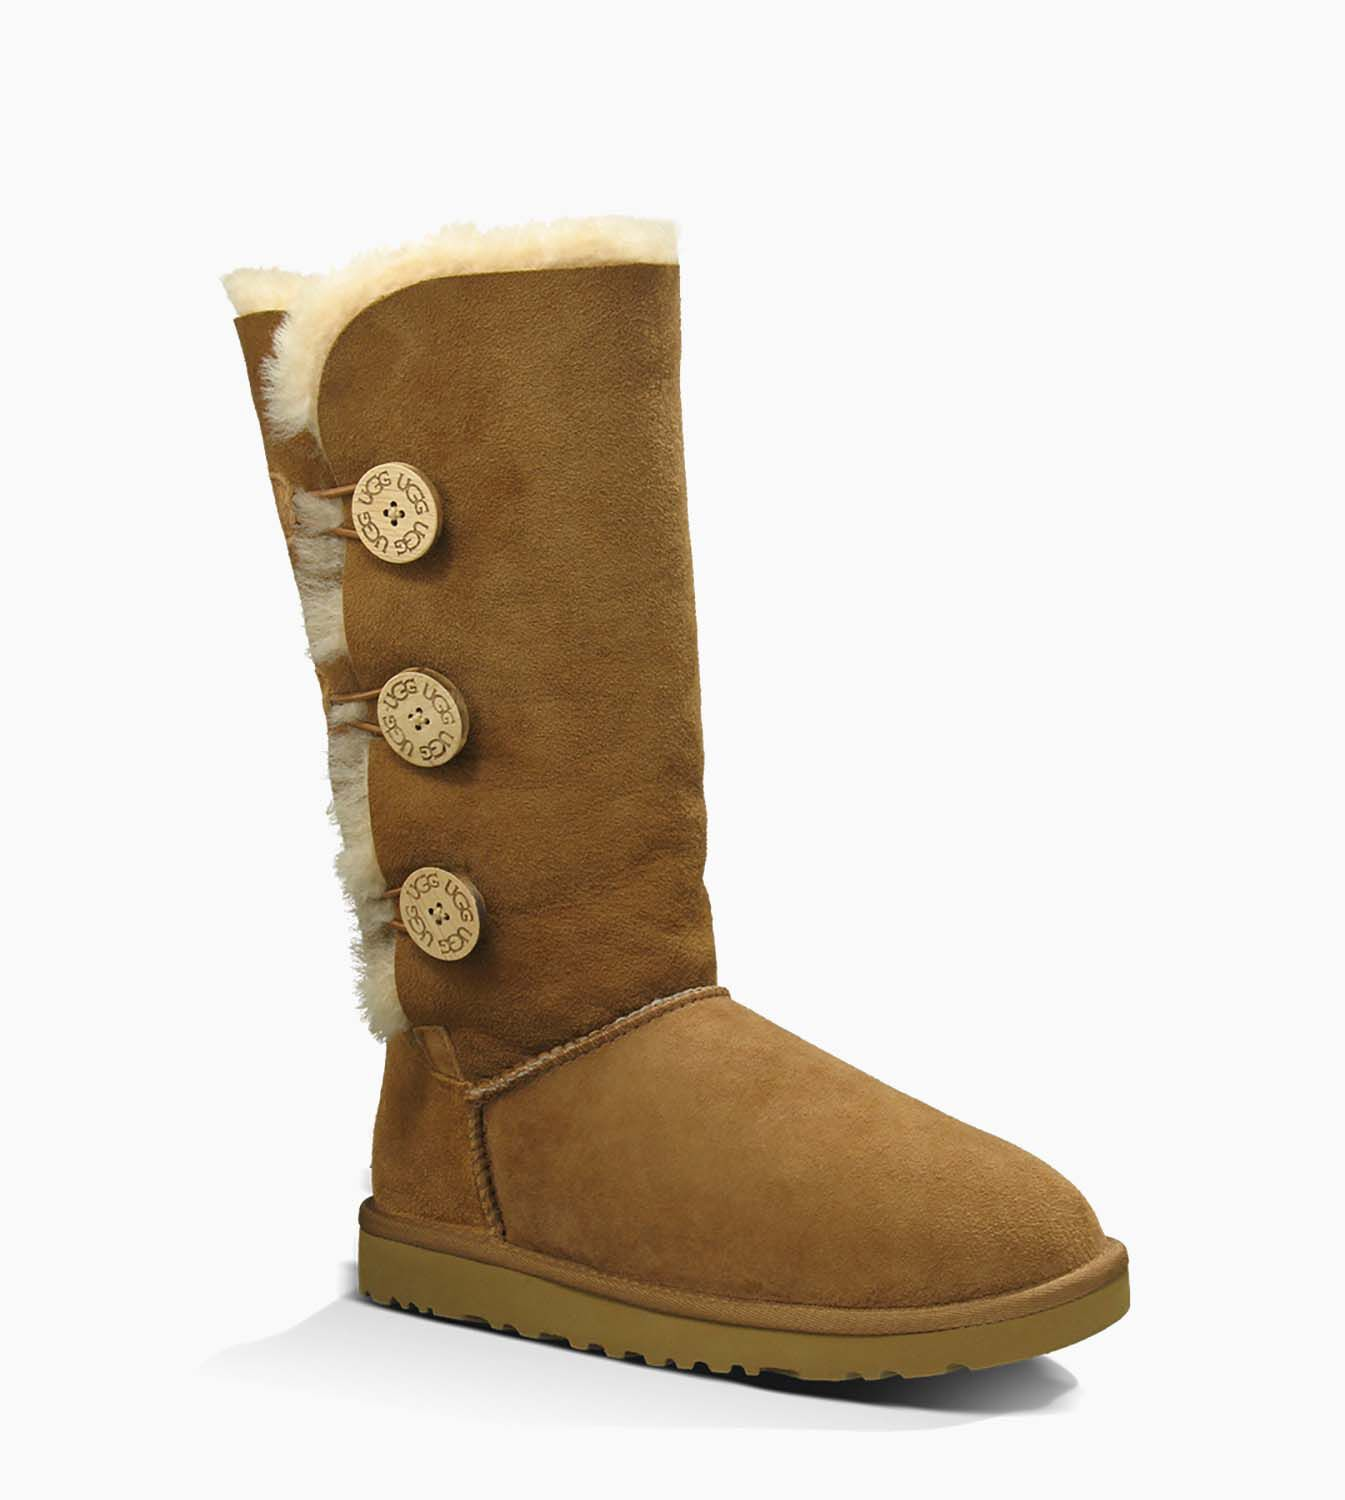 ugg boots bailey button nz